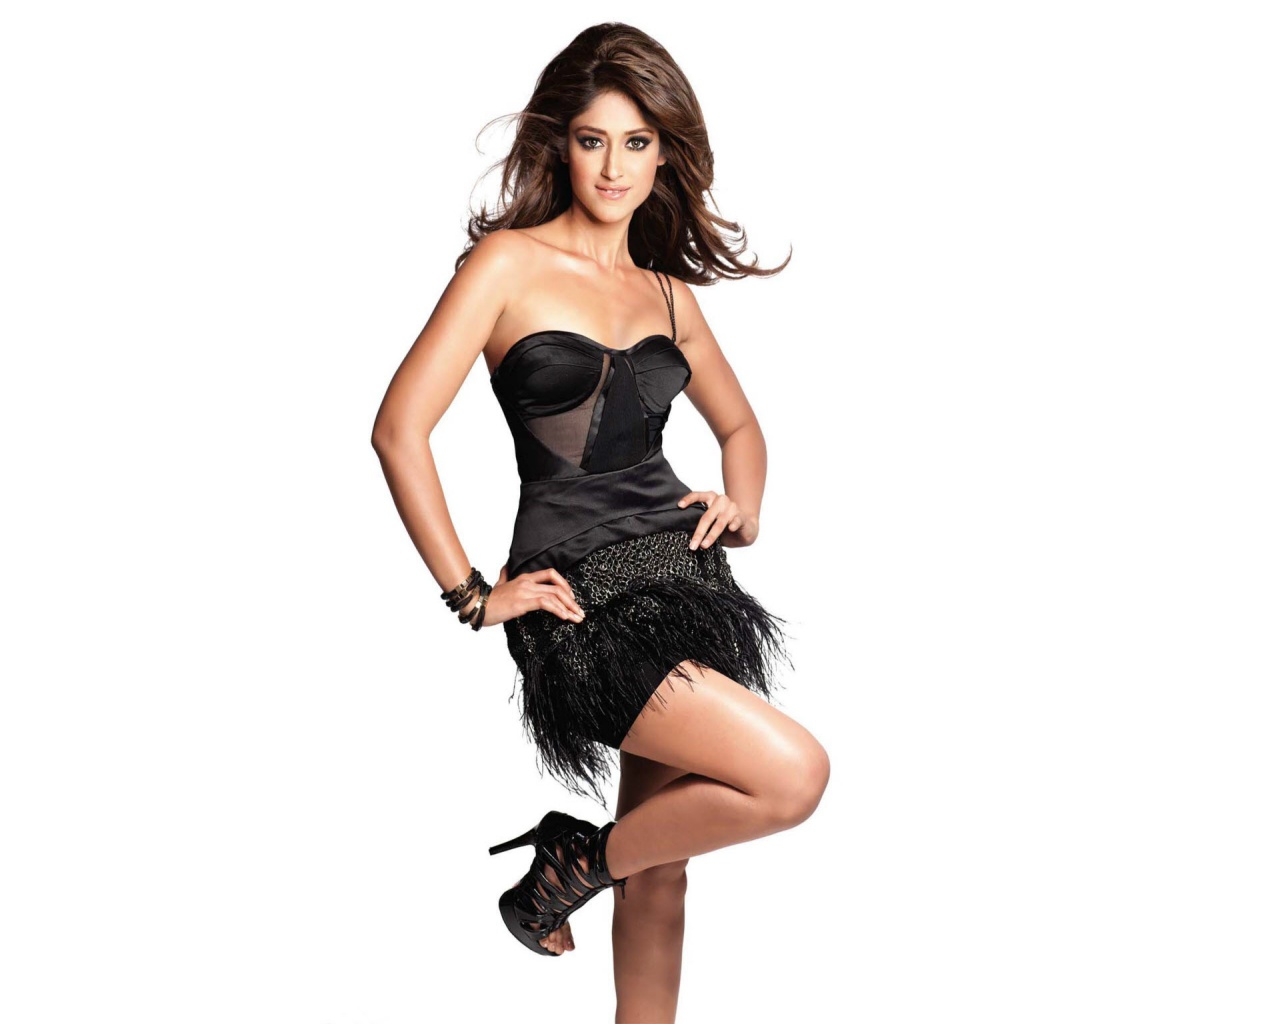 download_wallpapers_1280_1024_ileana_dcruz